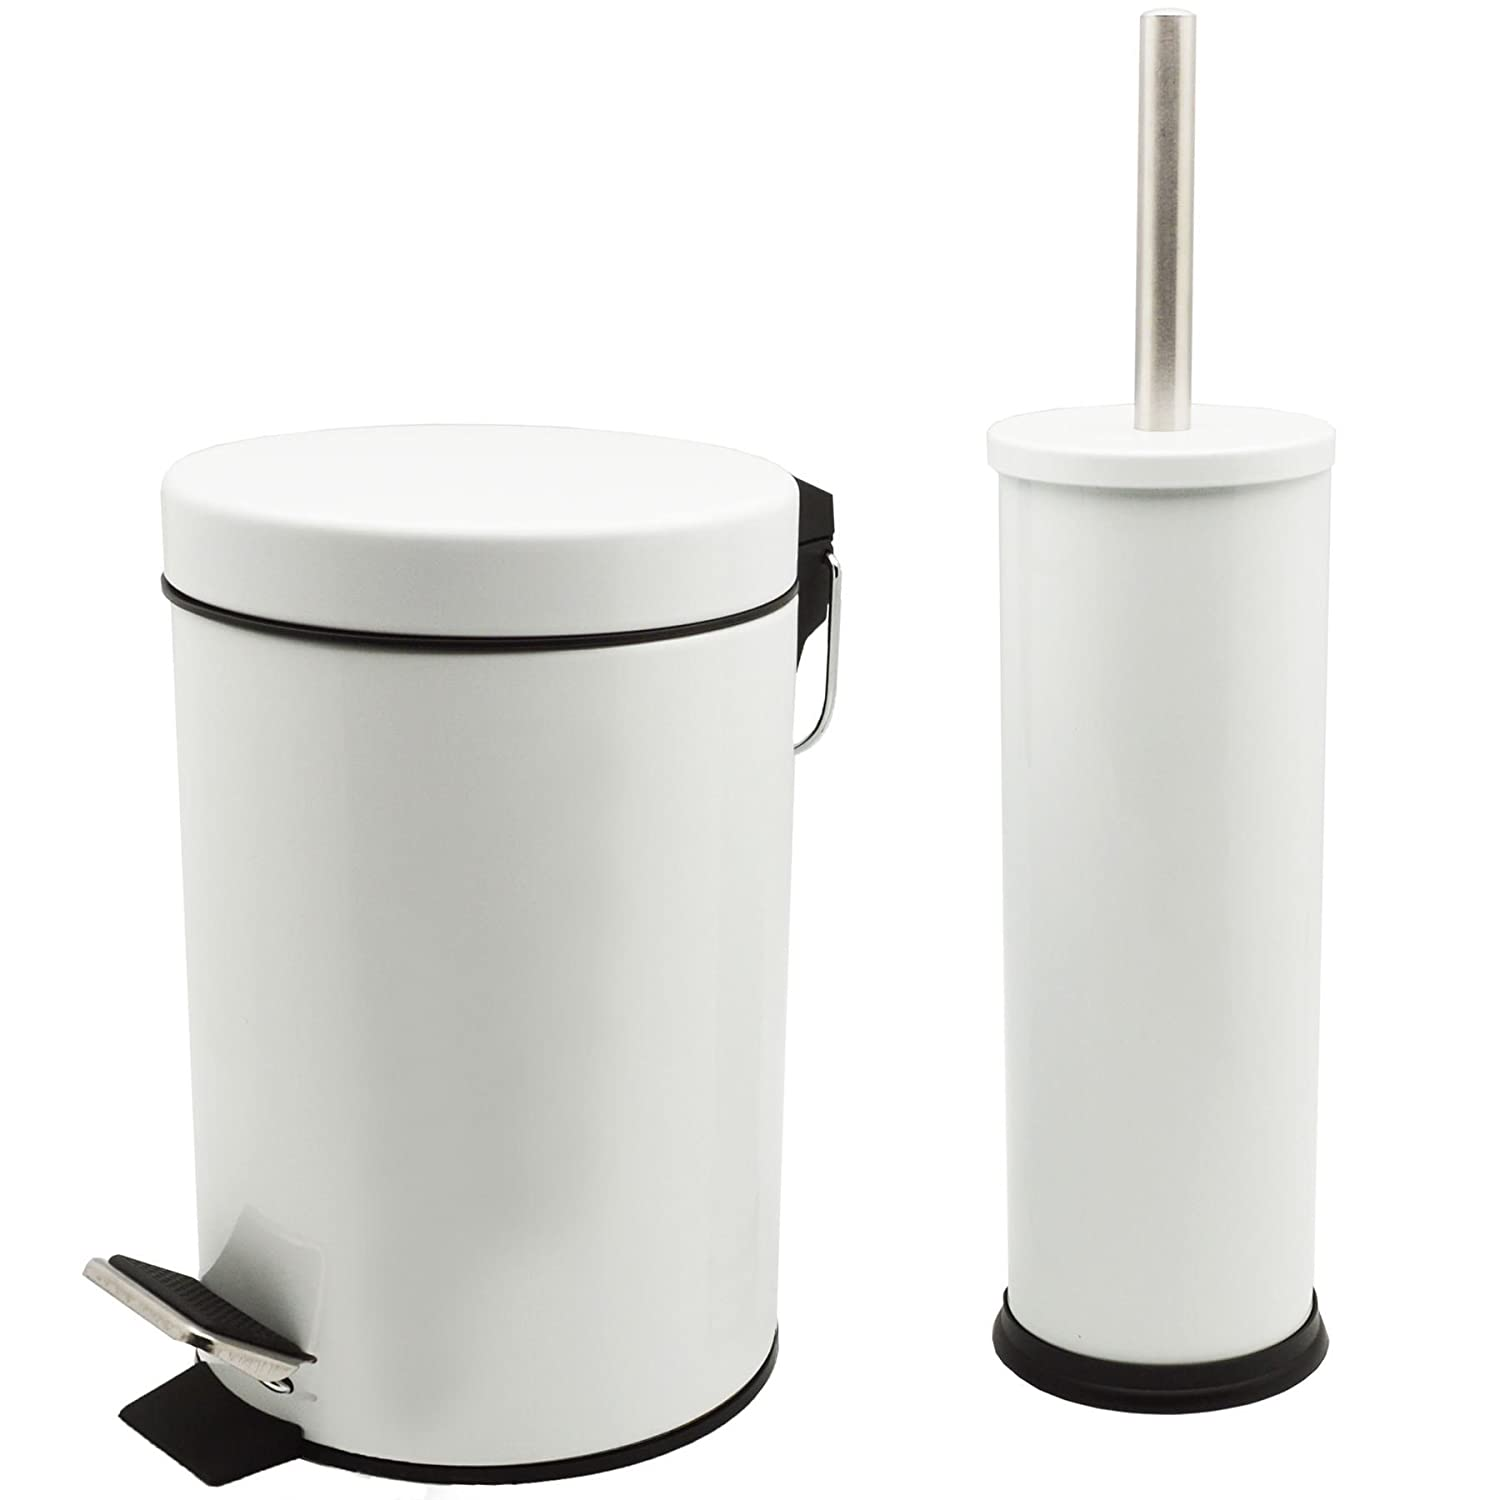 Harbour Housewares Bathroom Pedal Bin and Toilet Brush Set - 3 Litre Bin - White Finish